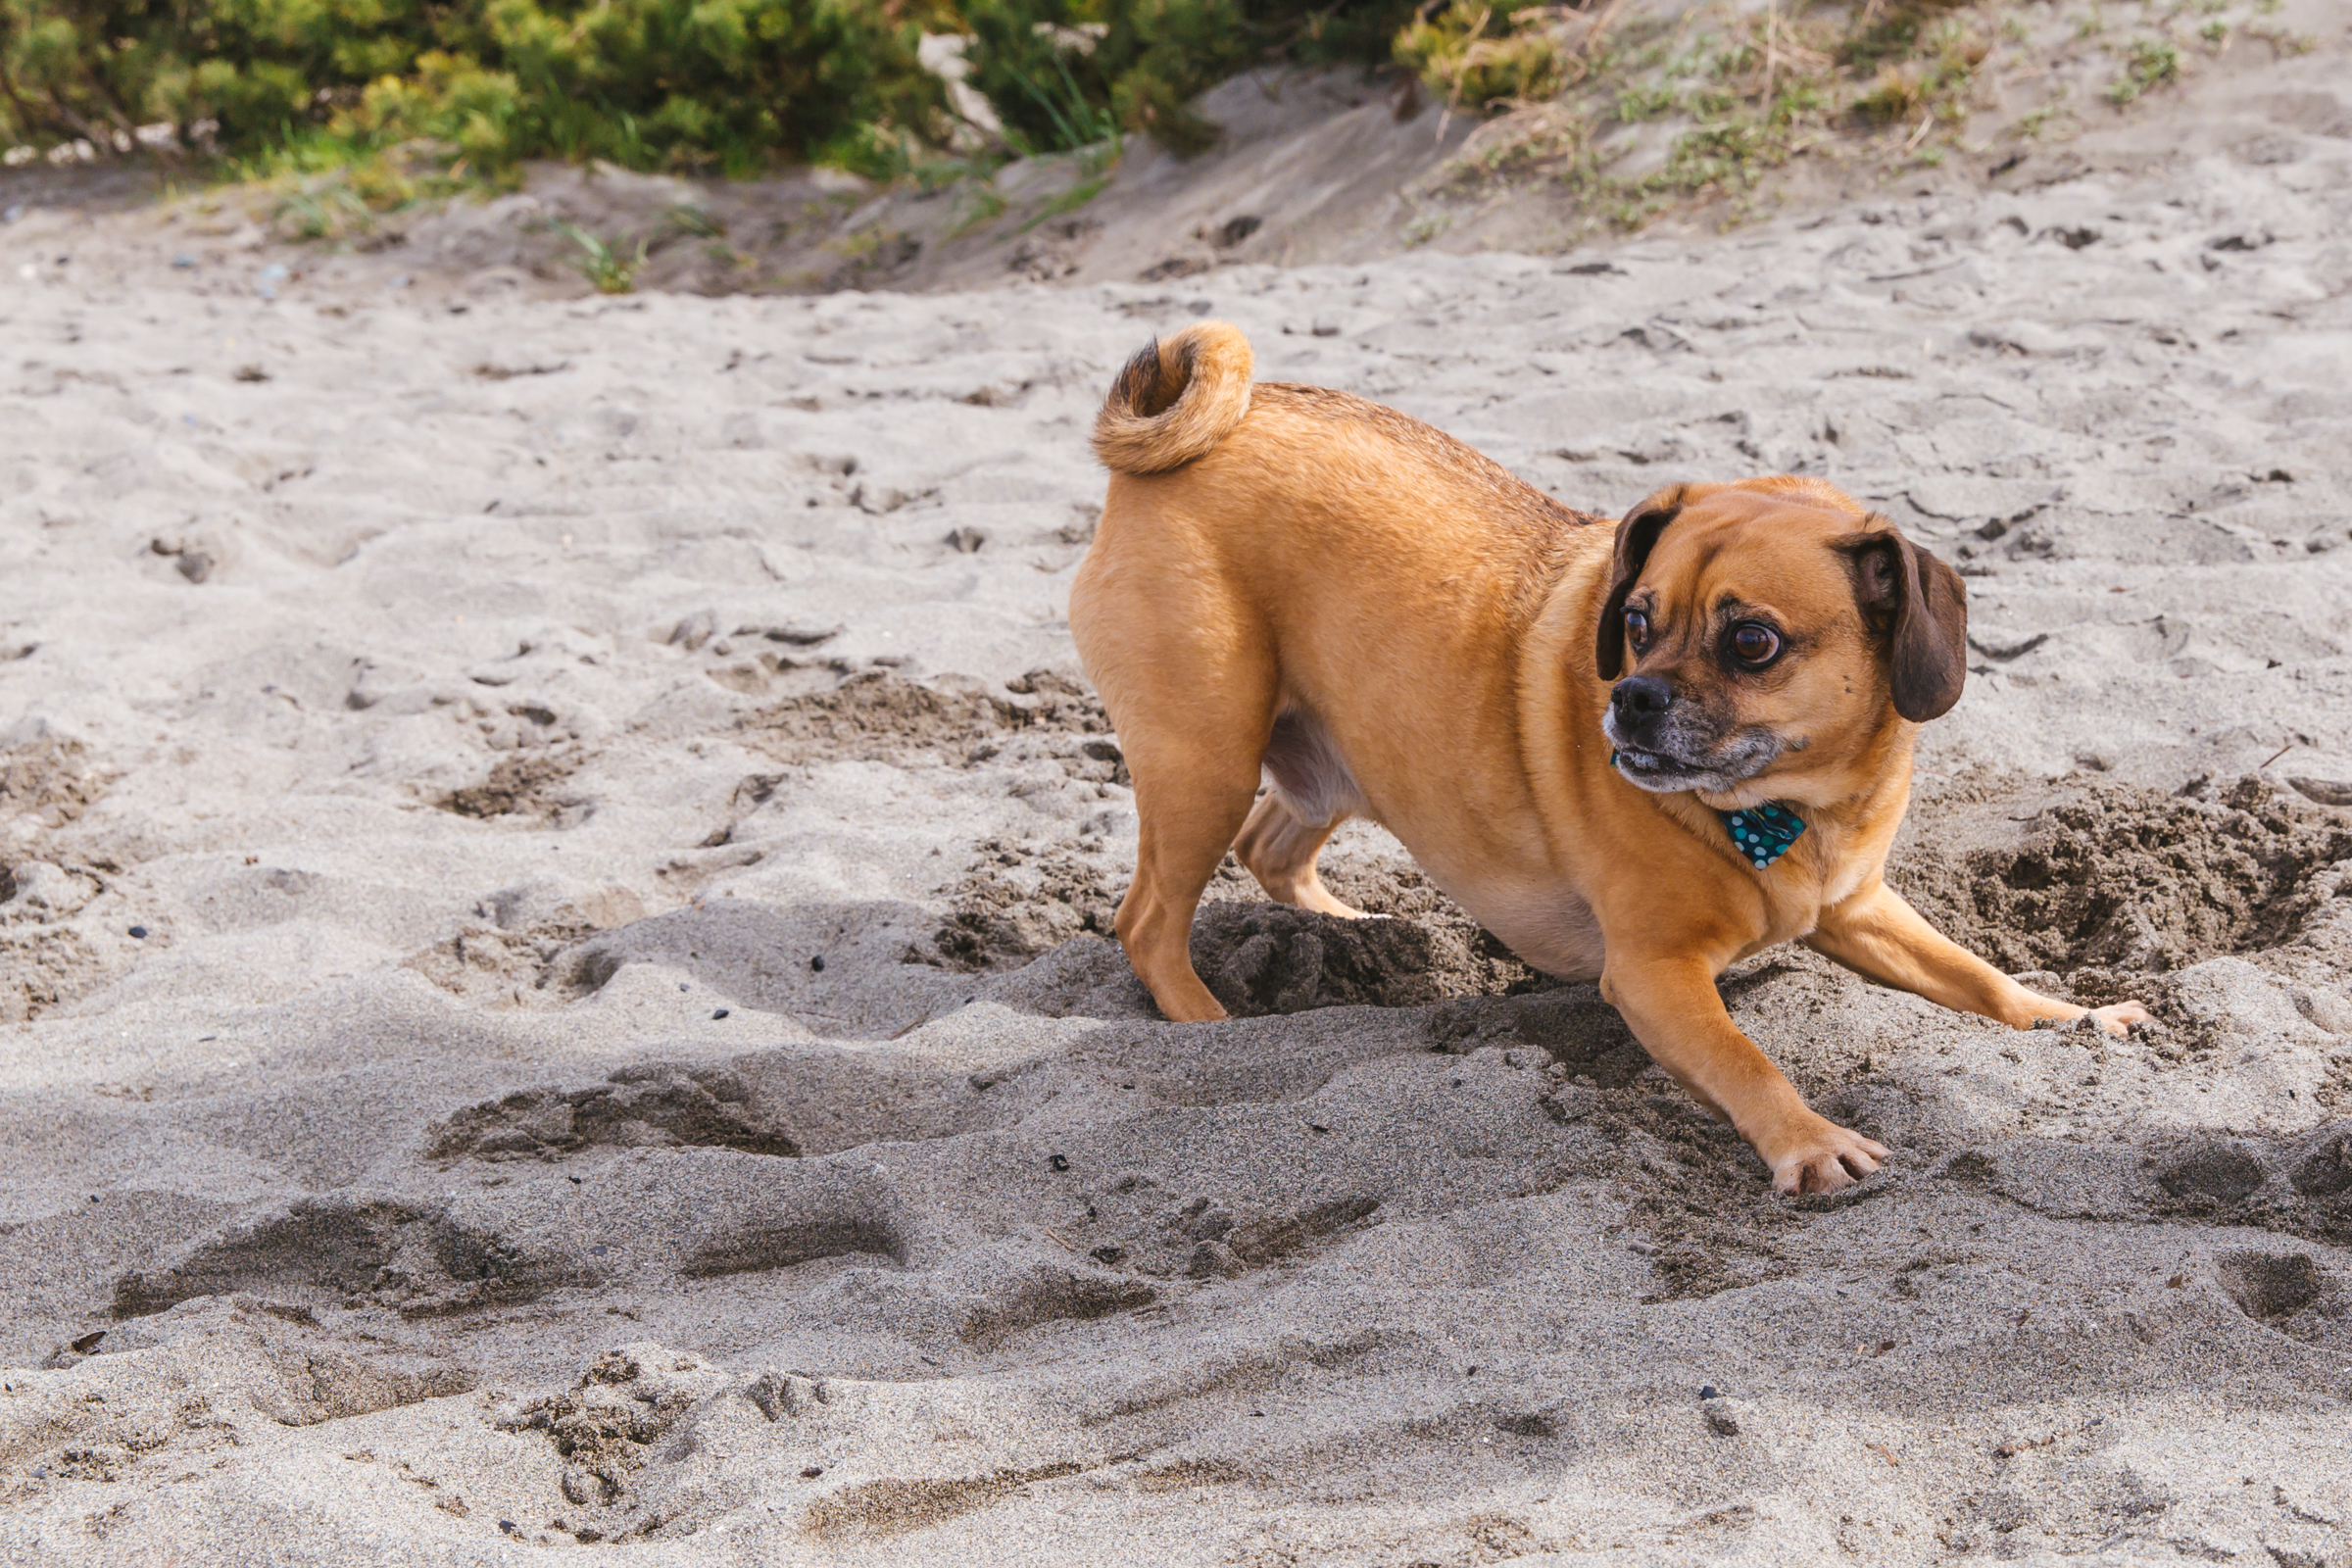 Our RUFFined Spotlight this week is Percy the Puggle! Percy lives with his mumsie, Amy, who got him from a farm in Missouri. Since then, Percy has traveled all around the country making him quite the little travel companion. Percy likes cheese, running in a figure 8, digging in the sand, kids, and attention. He dislikes when the street sweeper comes down the street, swimming, and when the dogs on TV ignore him. The Seattle RUFFined Spotlight is a weekly profile of local pets living and loving life in the PNW. If you or someone you know has a pet you'd like featured, email us at hello@seattlerefined.com or tag #SeattleRUFFined and your furbaby could be the next spotlighted! (Image: Sunita Martini / Seattle Refined).